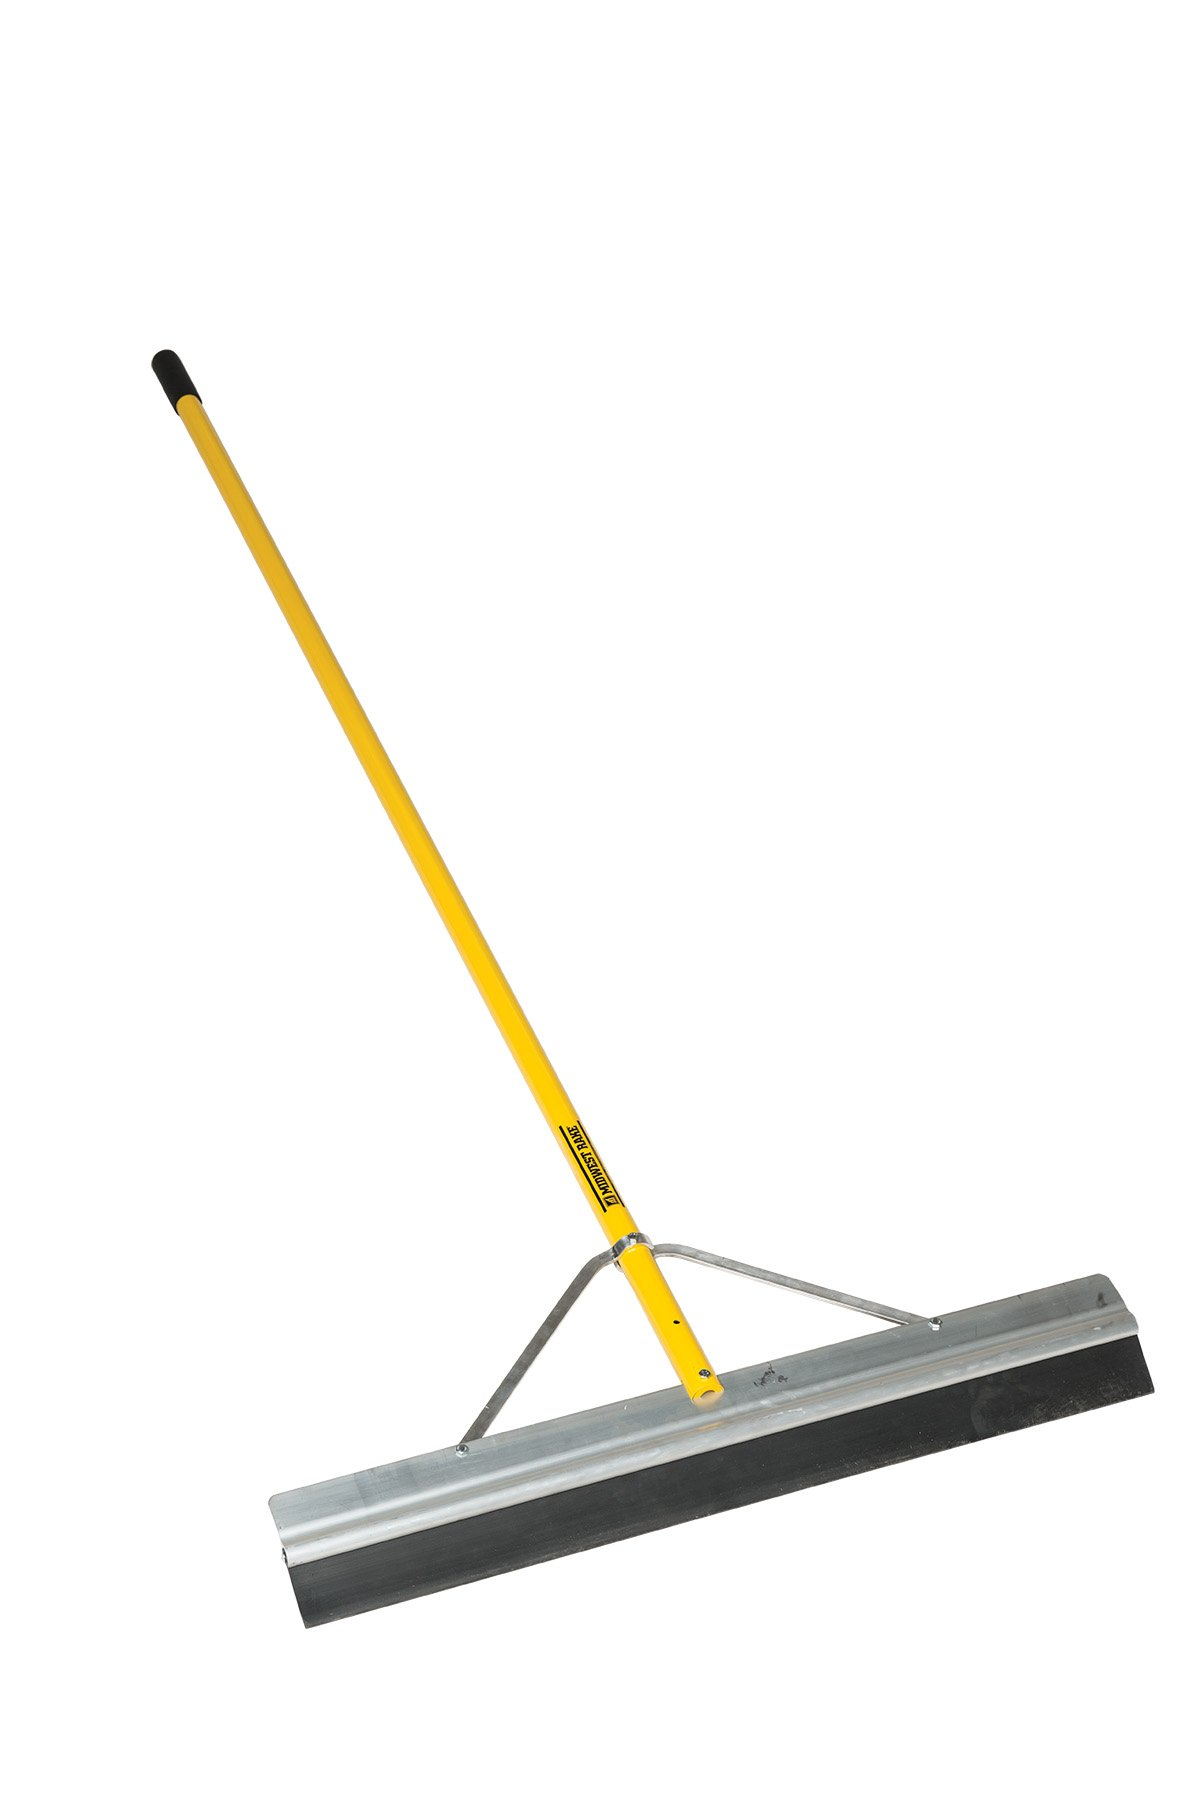 Midwest Rake S550 Professional Series Seal Coat Squeegee with Powder-Coated Aluminum Cushion Grip Handle (Various Sizes and Styles)